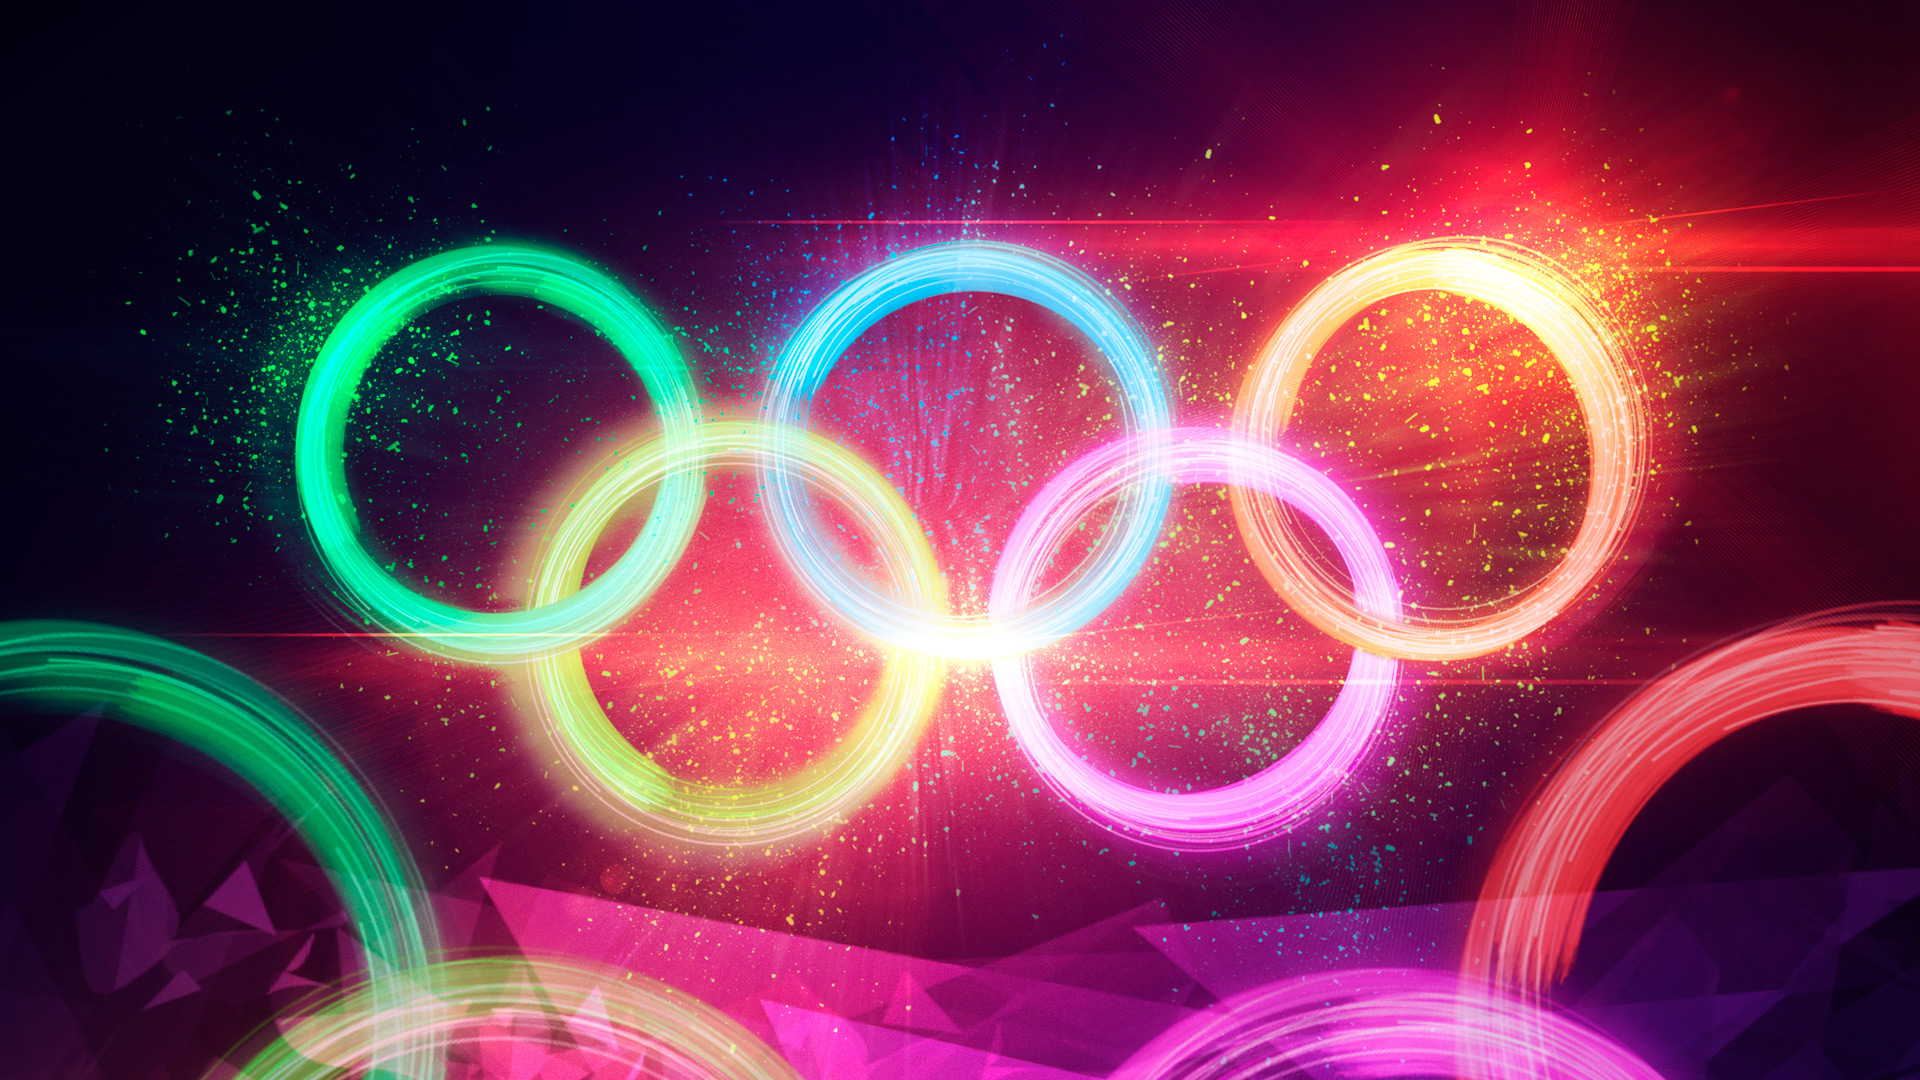 Parallax 3d Effect Wallpaper Pro Dramatic Particle Explosion Olympic Rings Artwork